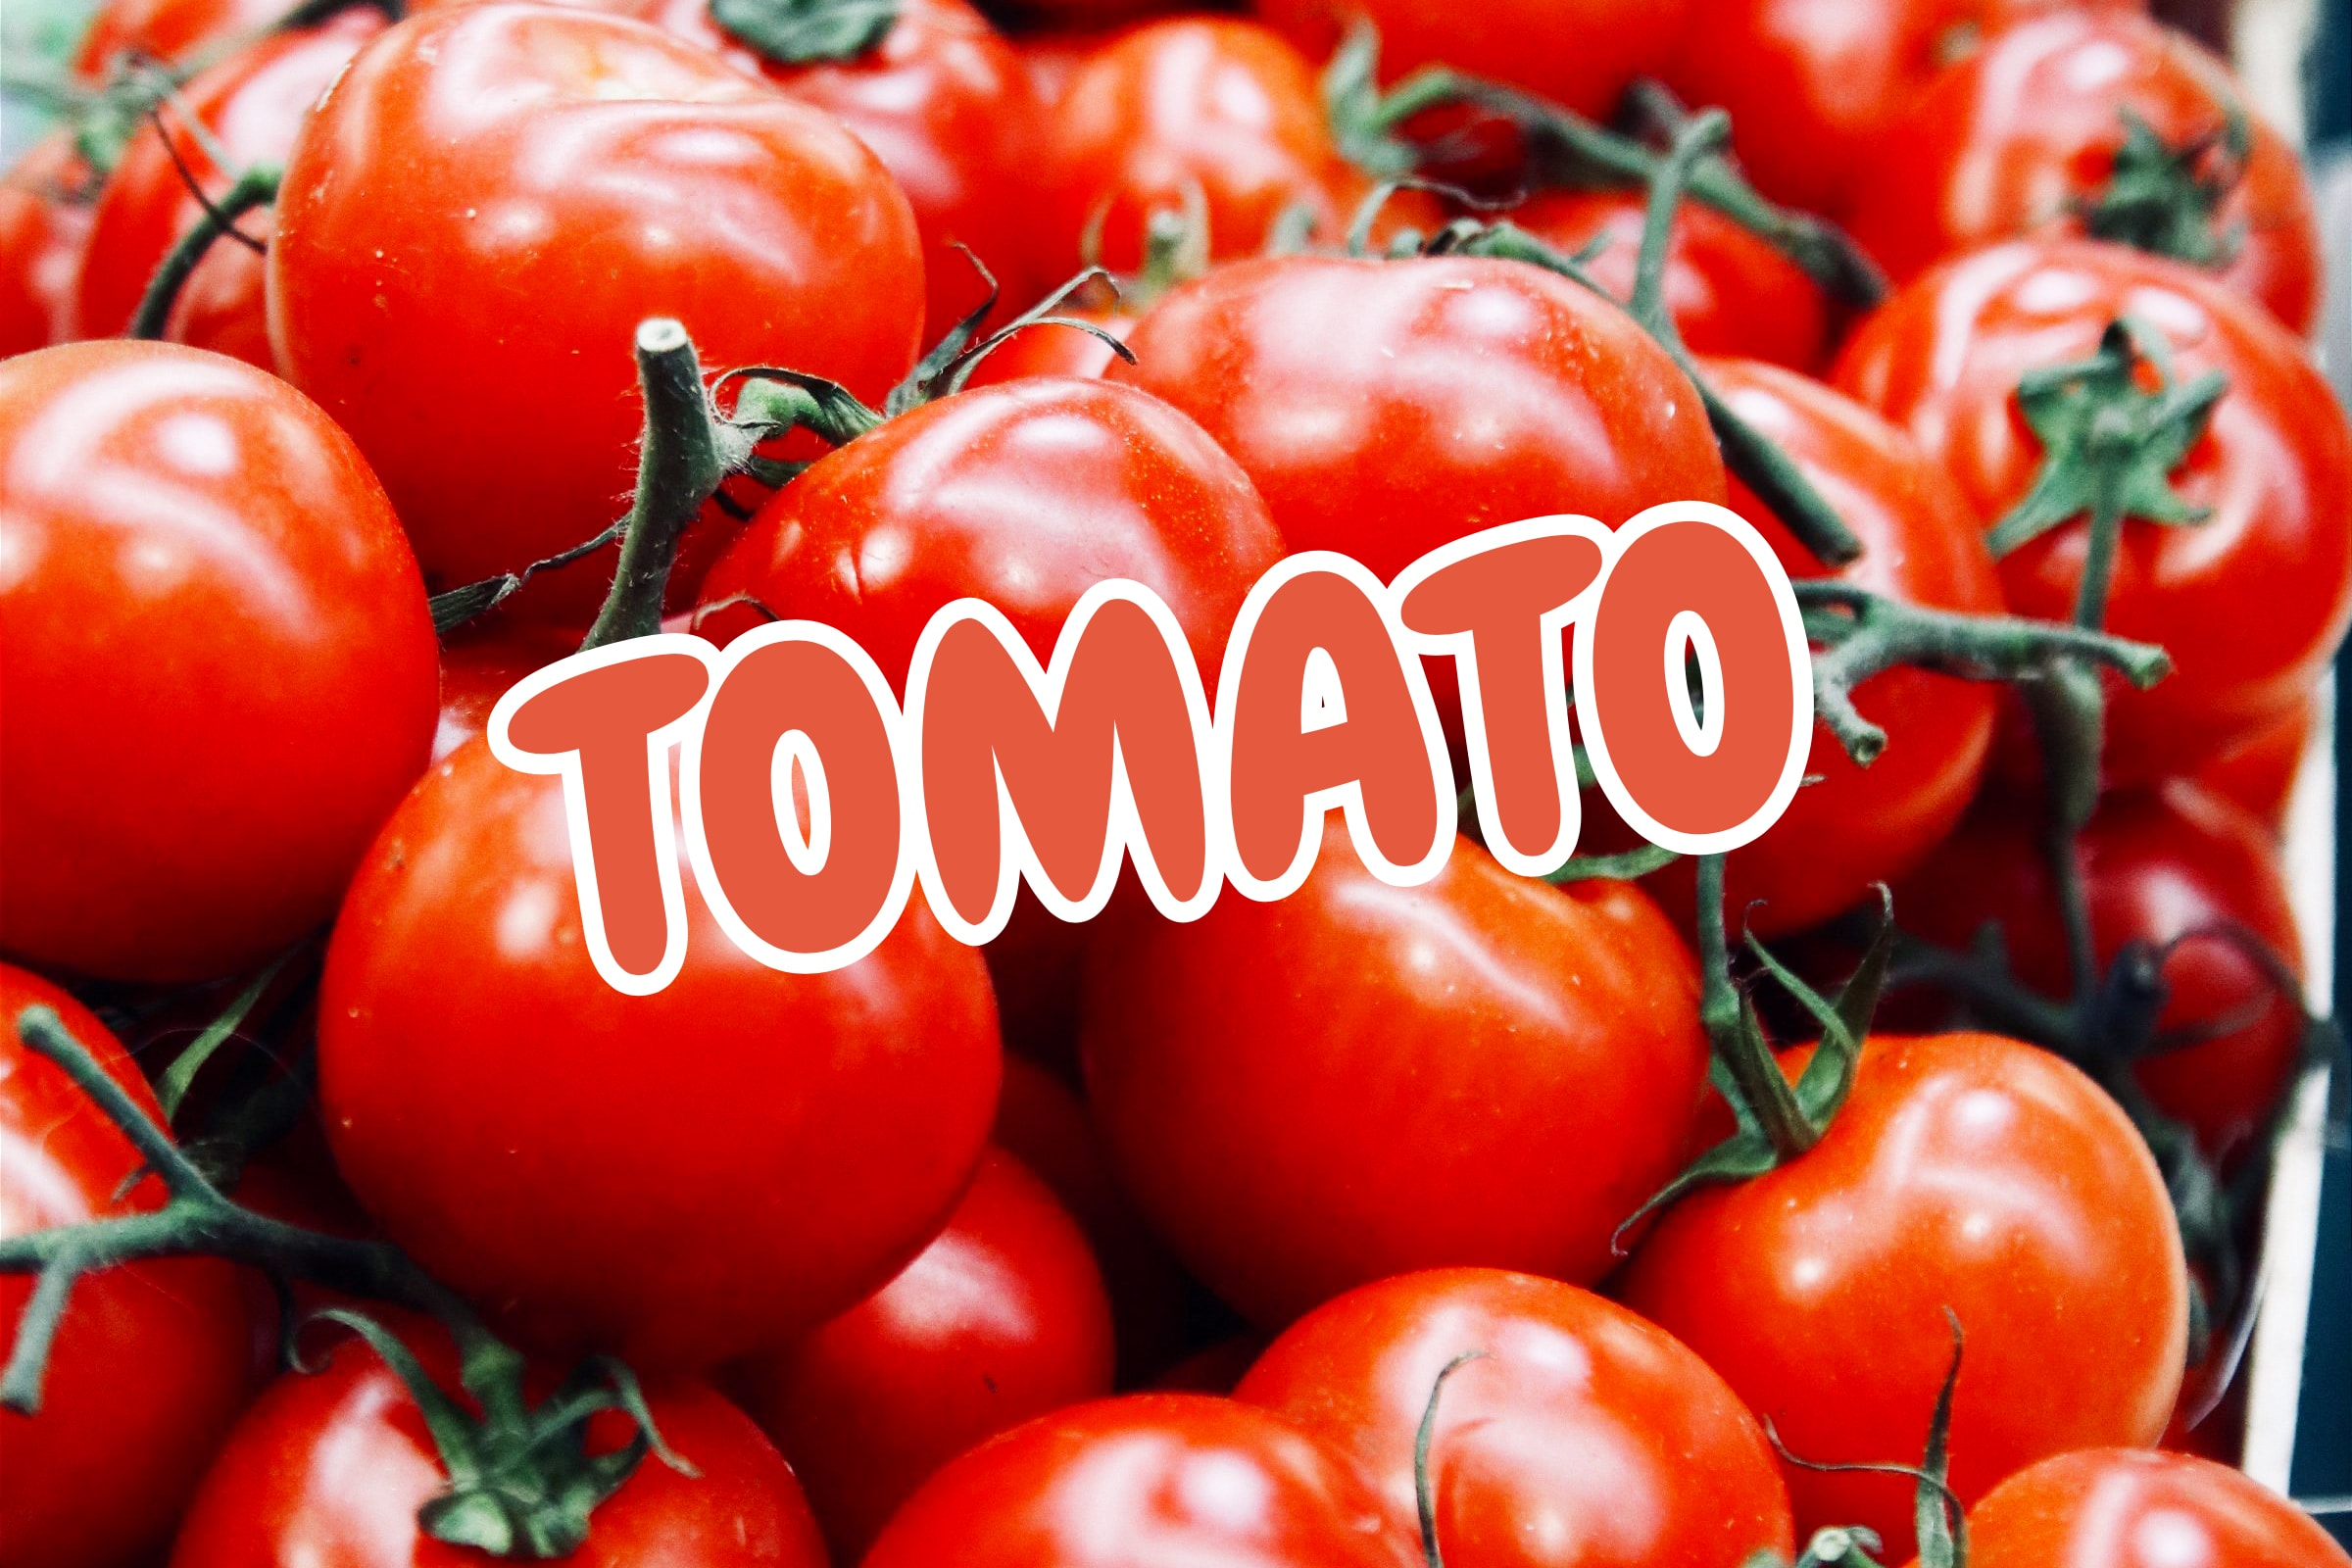 What Is The Tomato Plant?